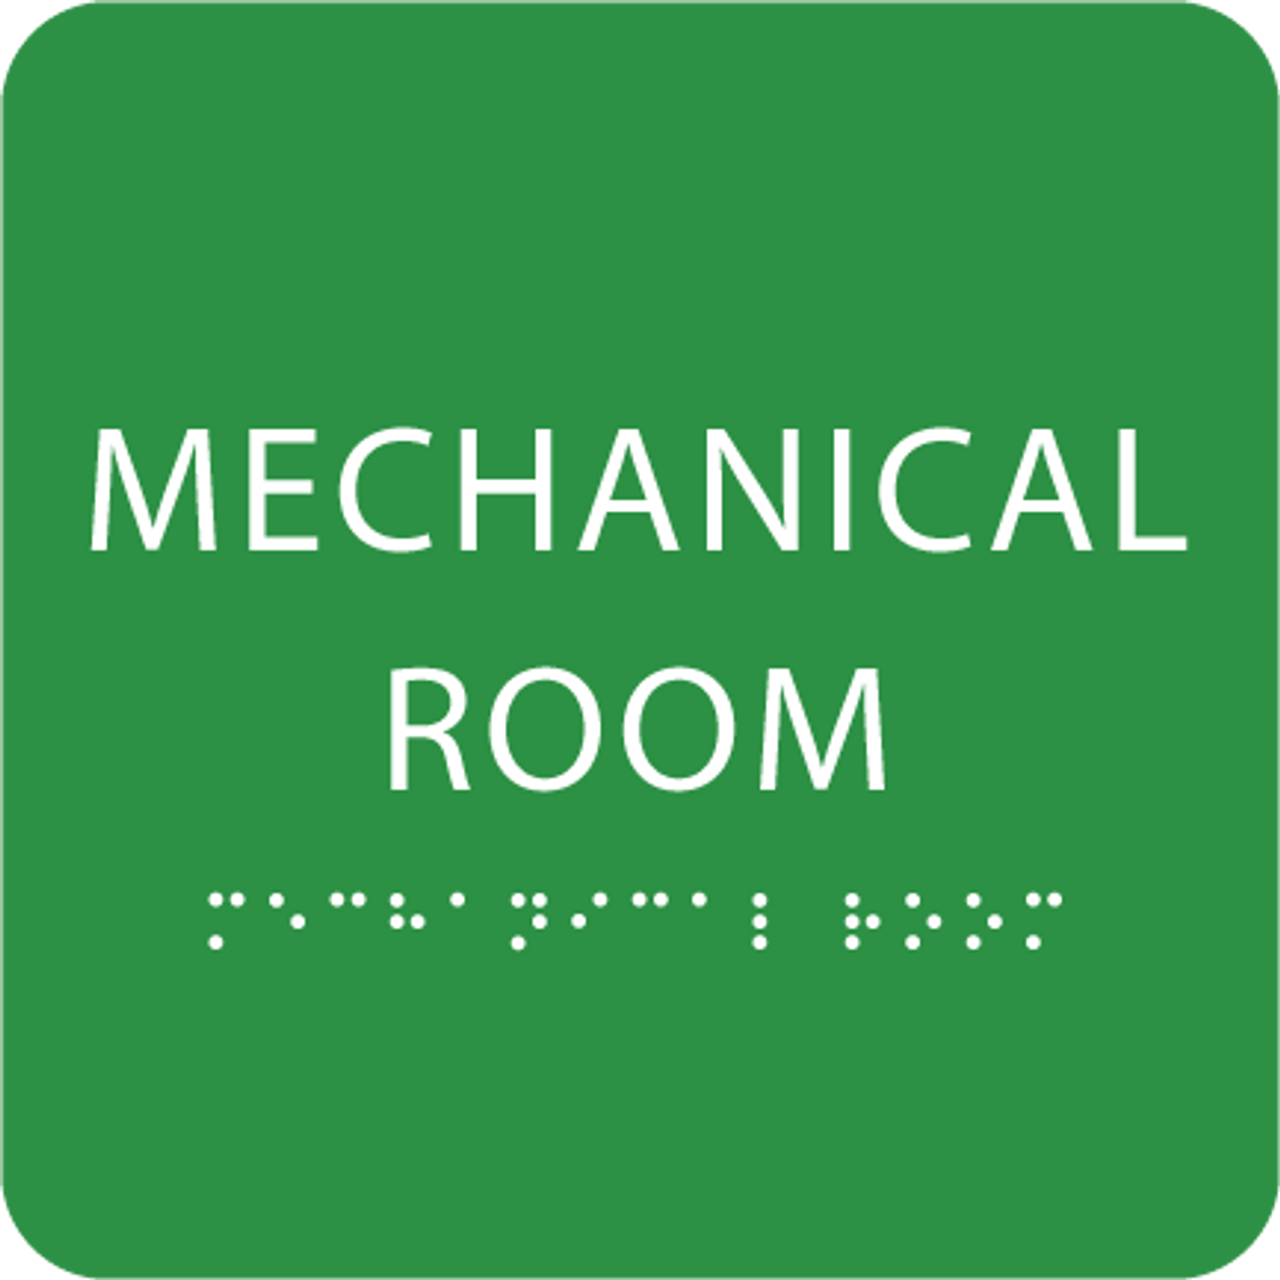 Light Green Tactile Mechanical Room Sign